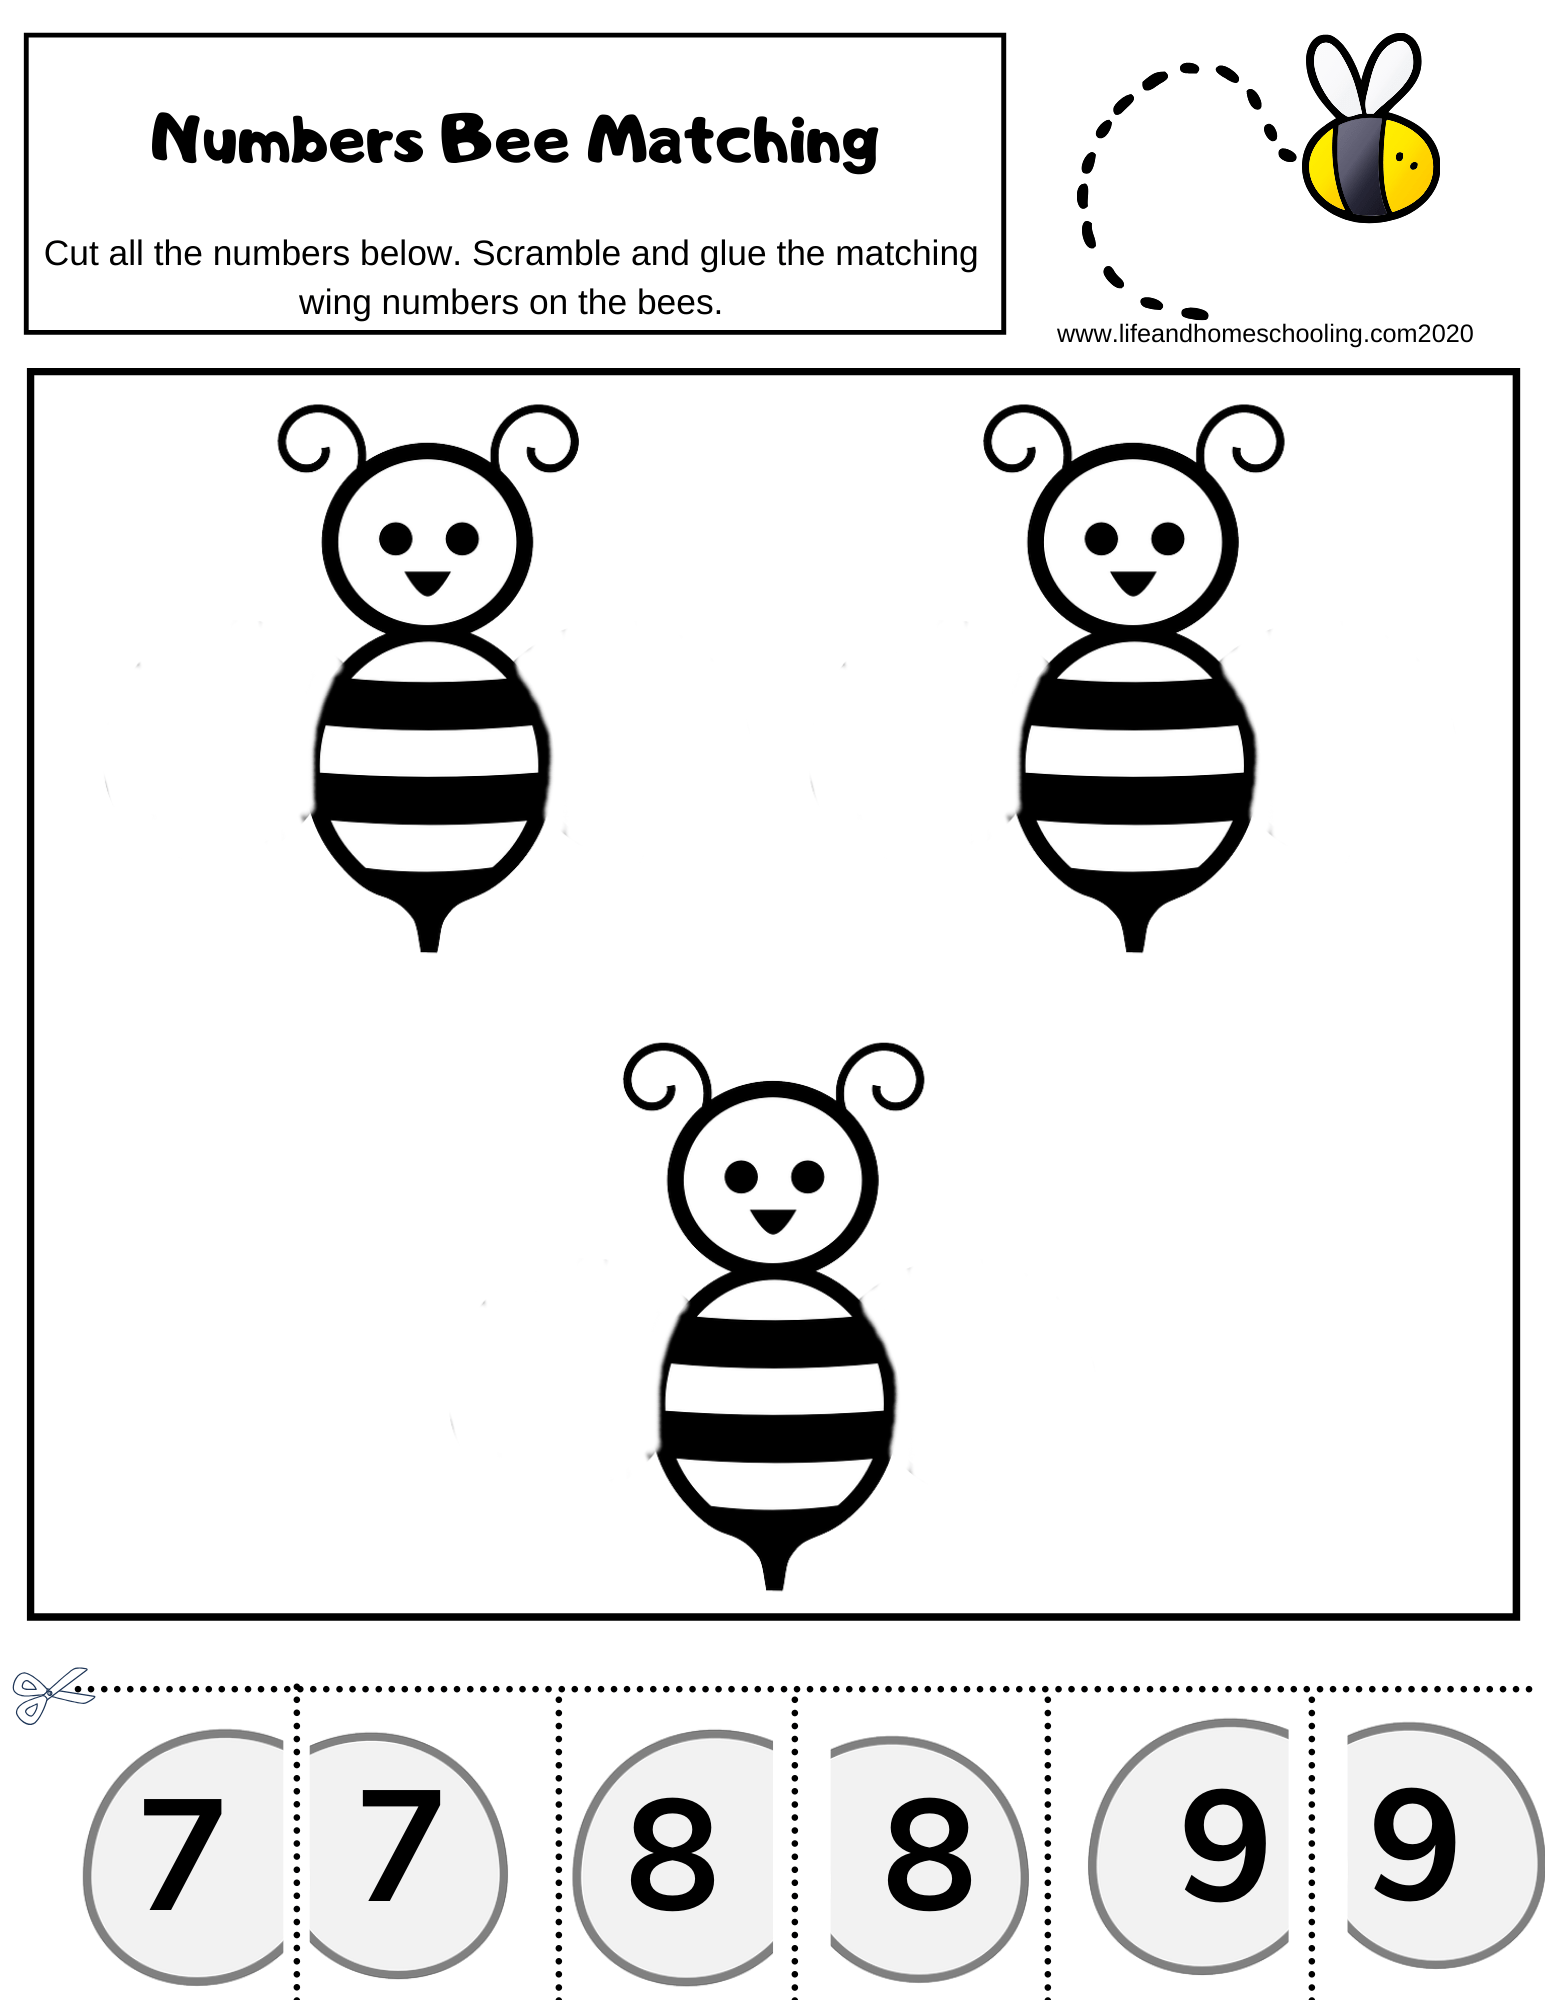 Preschool Number Matching Activity Worksheets